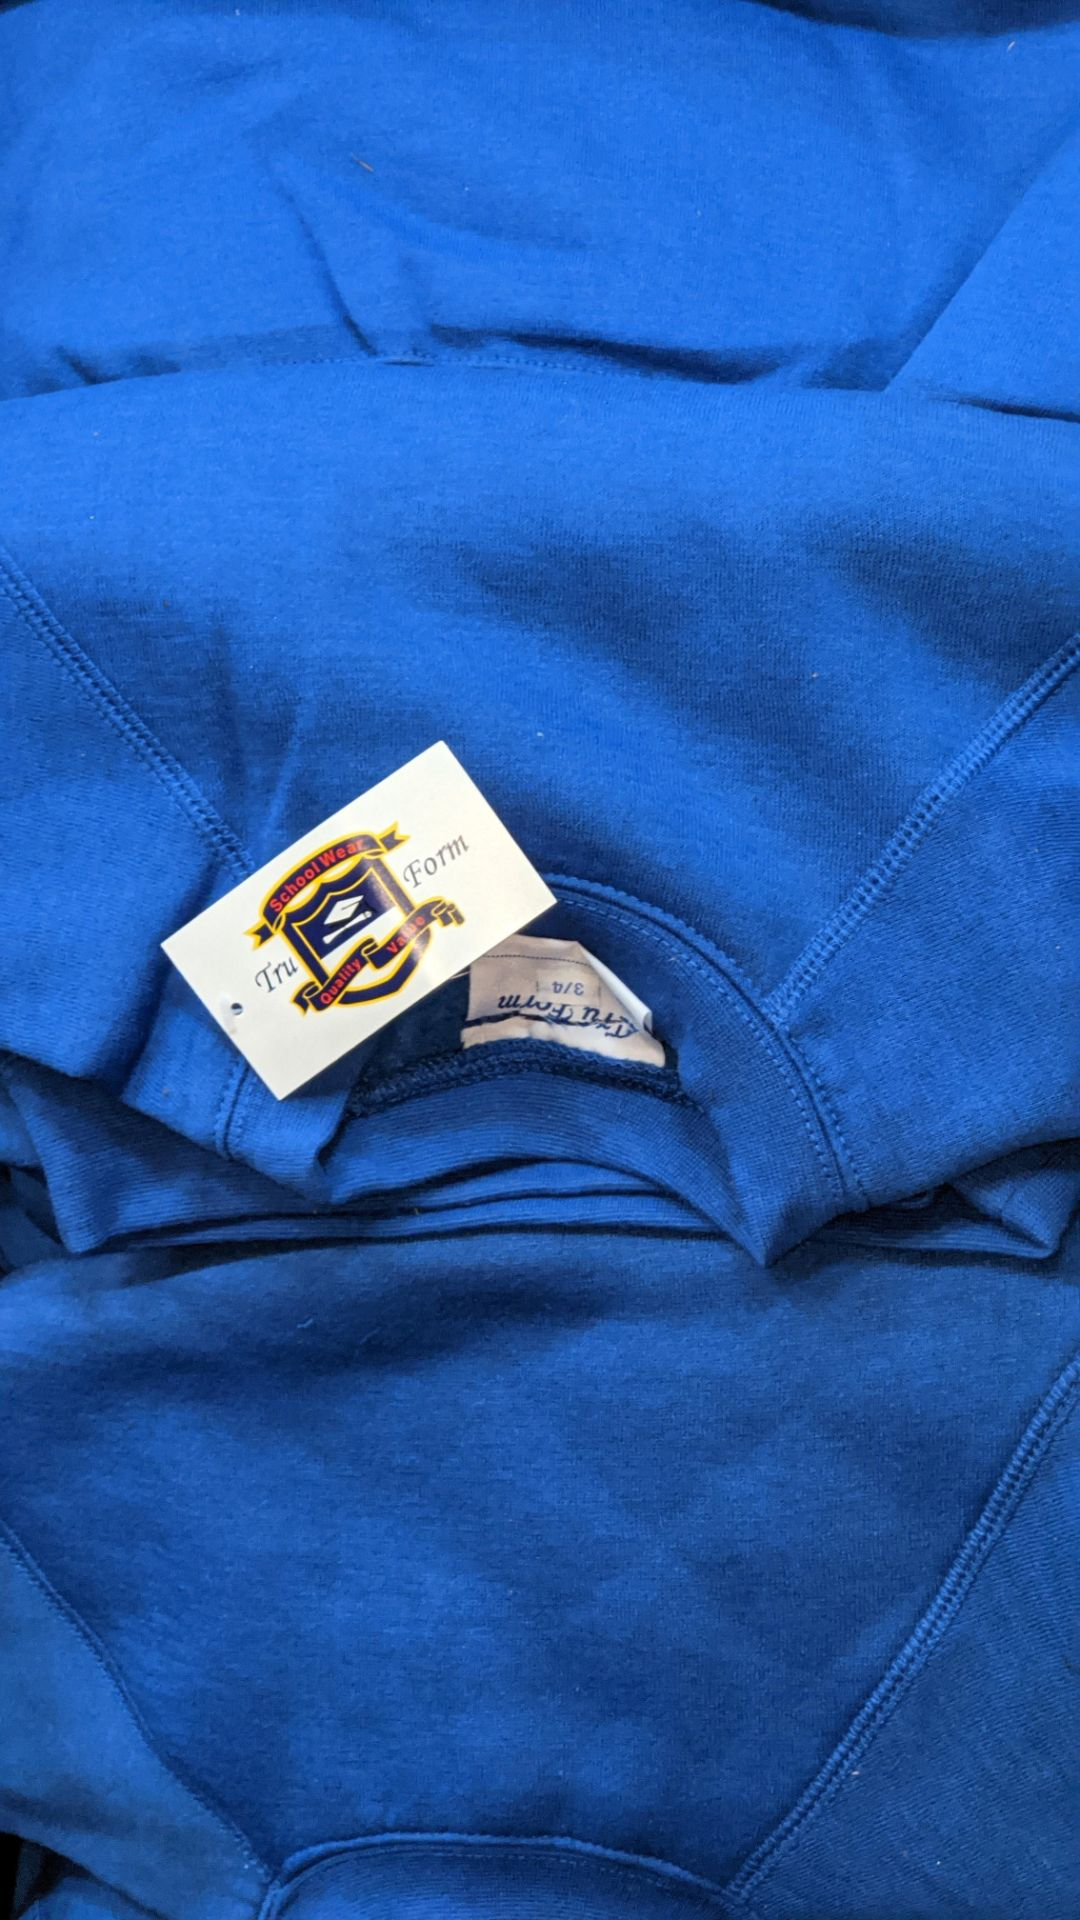 Approx 58 off children's blue sweatshirts - the contents of 3 crates. NB crates excluded - Image 5 of 6